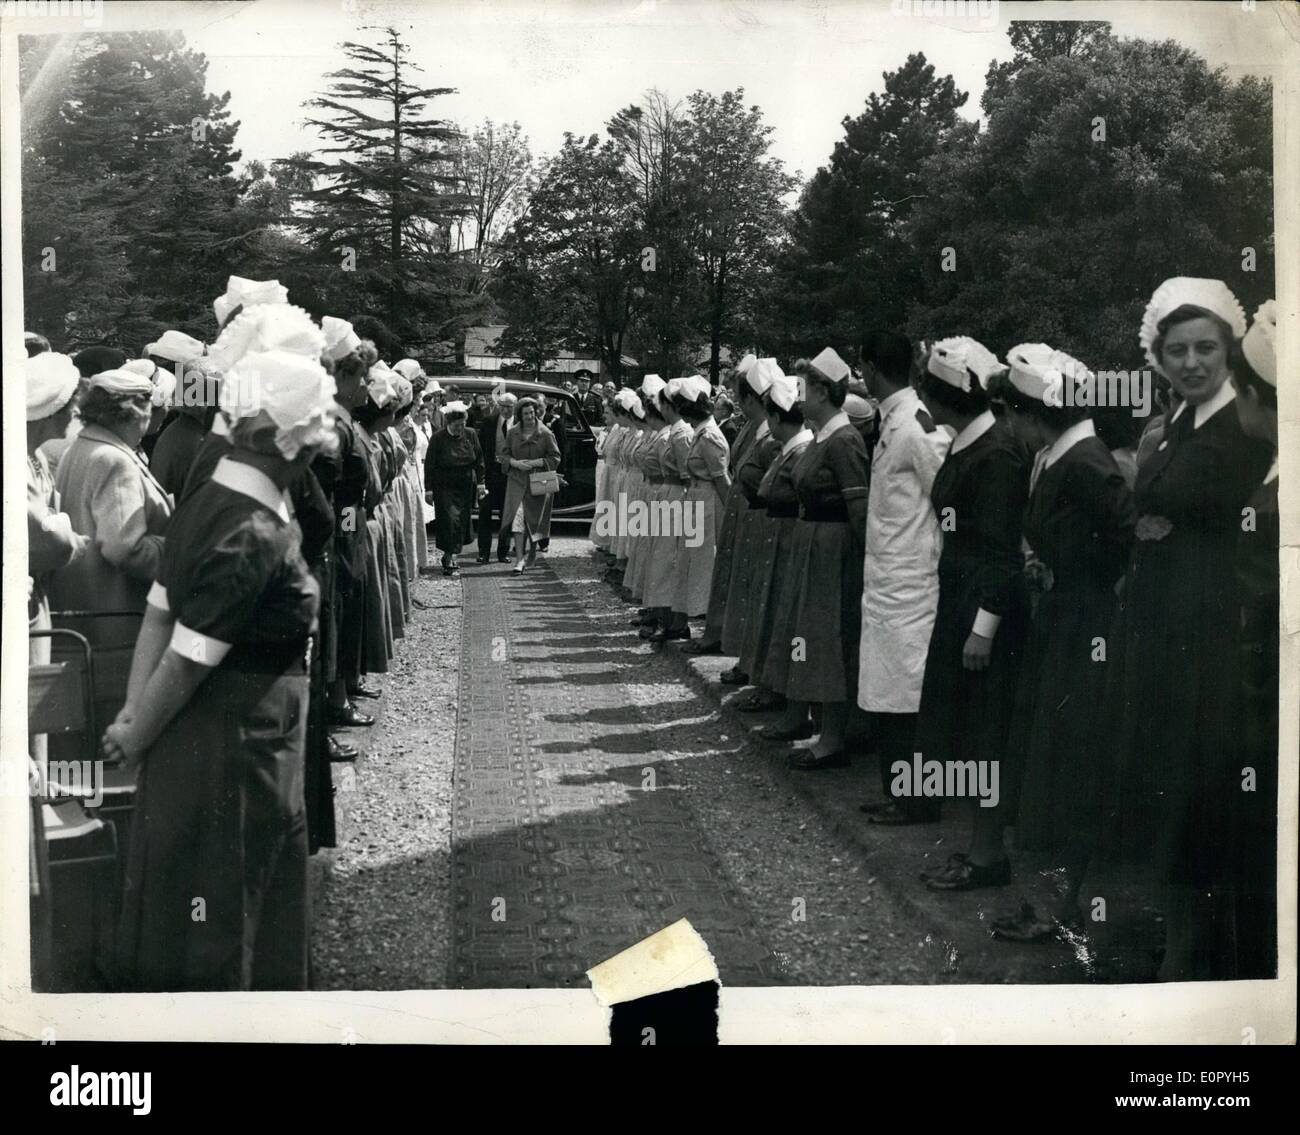 May 05, 1957 - Princess Alexandra opens new department at Royal Portsmouth Hospital: H.R.H. Princess Alexandra of Kent performed the ceremony of opening the new outpatients' department of the Royal Portsmouth Hospital. Photo shows Princess Alexandra walks between the Nurses' Guard of Honor - on arrival. - Stock Image